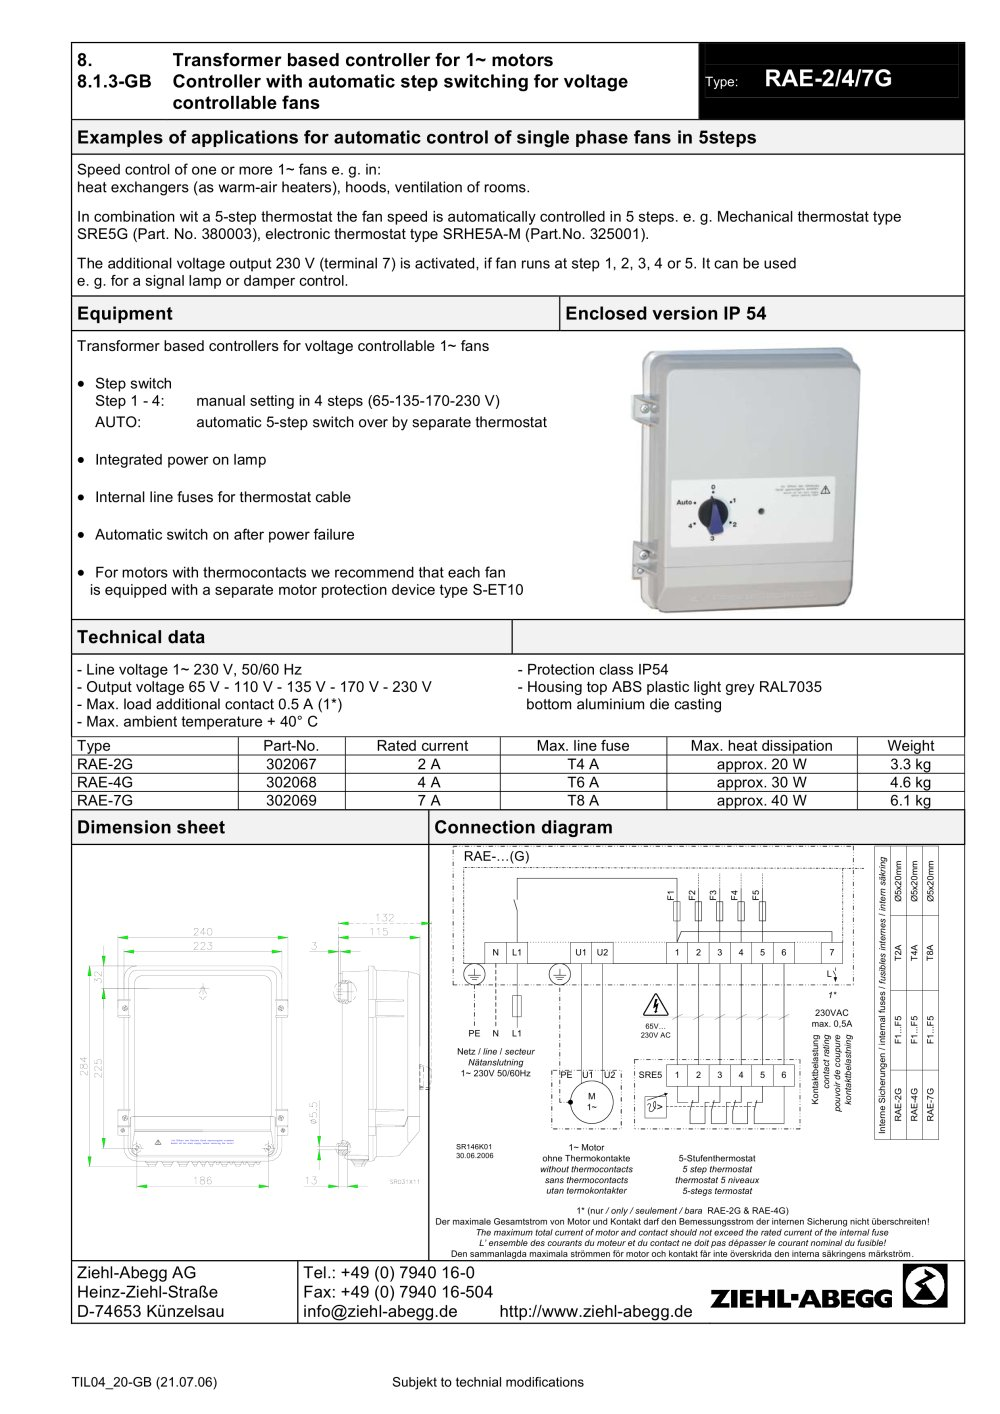 Magnificent Dimarzio Diagrams Tall Car Alarm System Diagram Flat 5 Way Switch Diagram Ibanez Pickup Young Solar Diagram Generator PurpleSolar Panel System Diagram 7G   ZIEHL ABEGG   PDF Catalogue | Technical Documentation ..